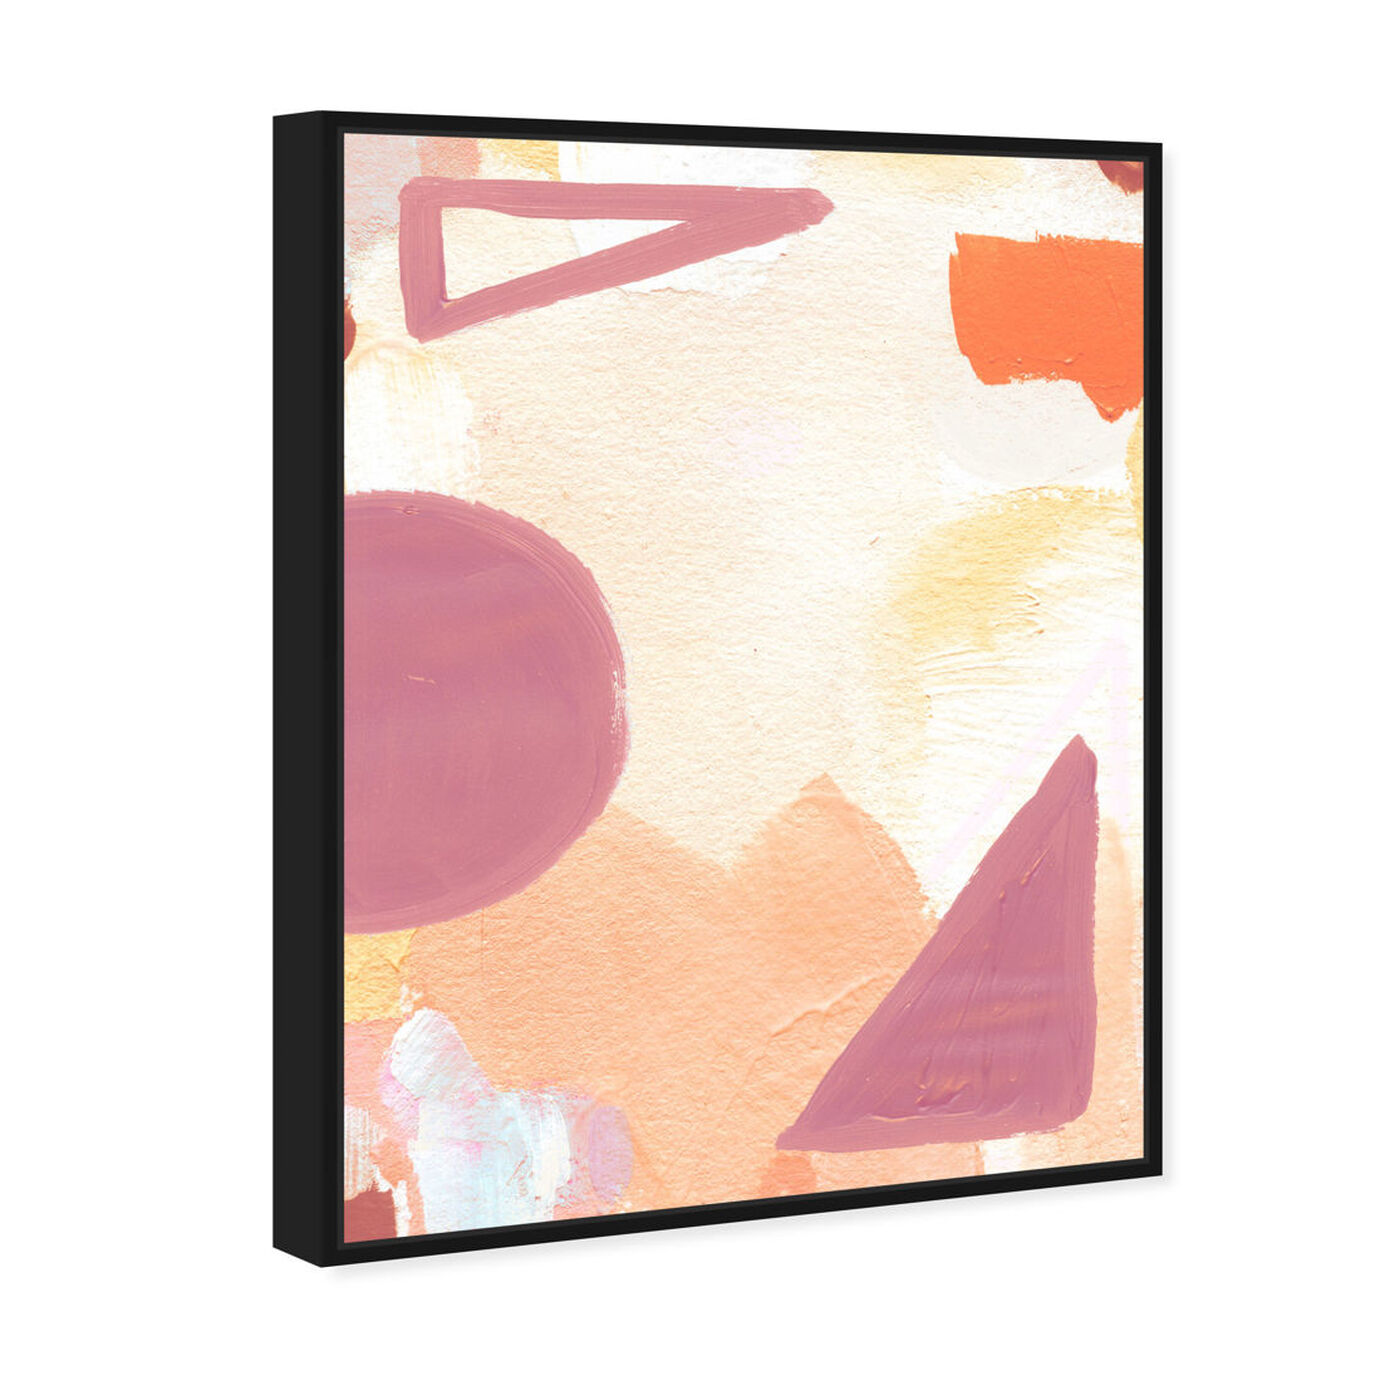 Angled view of Surreal Poetic featuring abstract and geometric art.